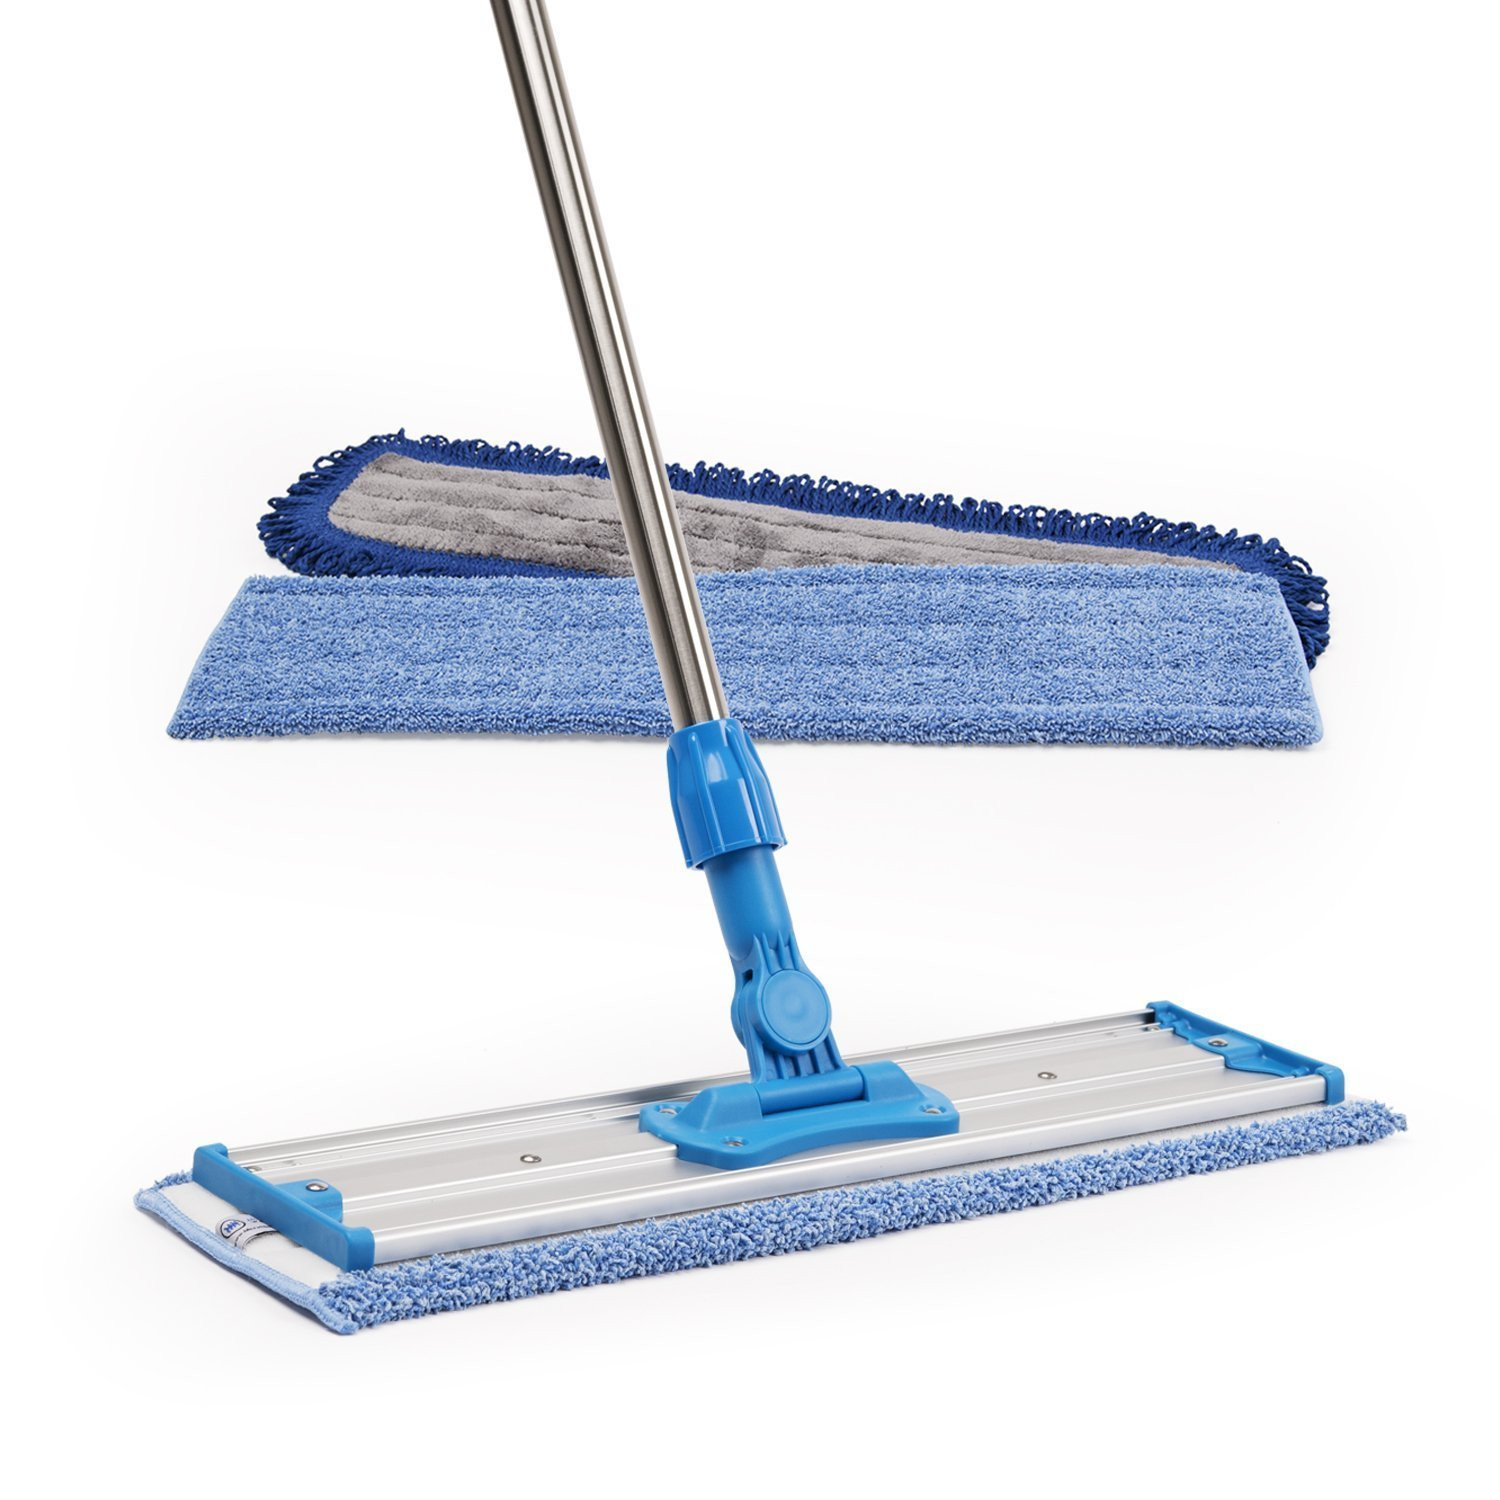 Best floor cleaning machine for tile